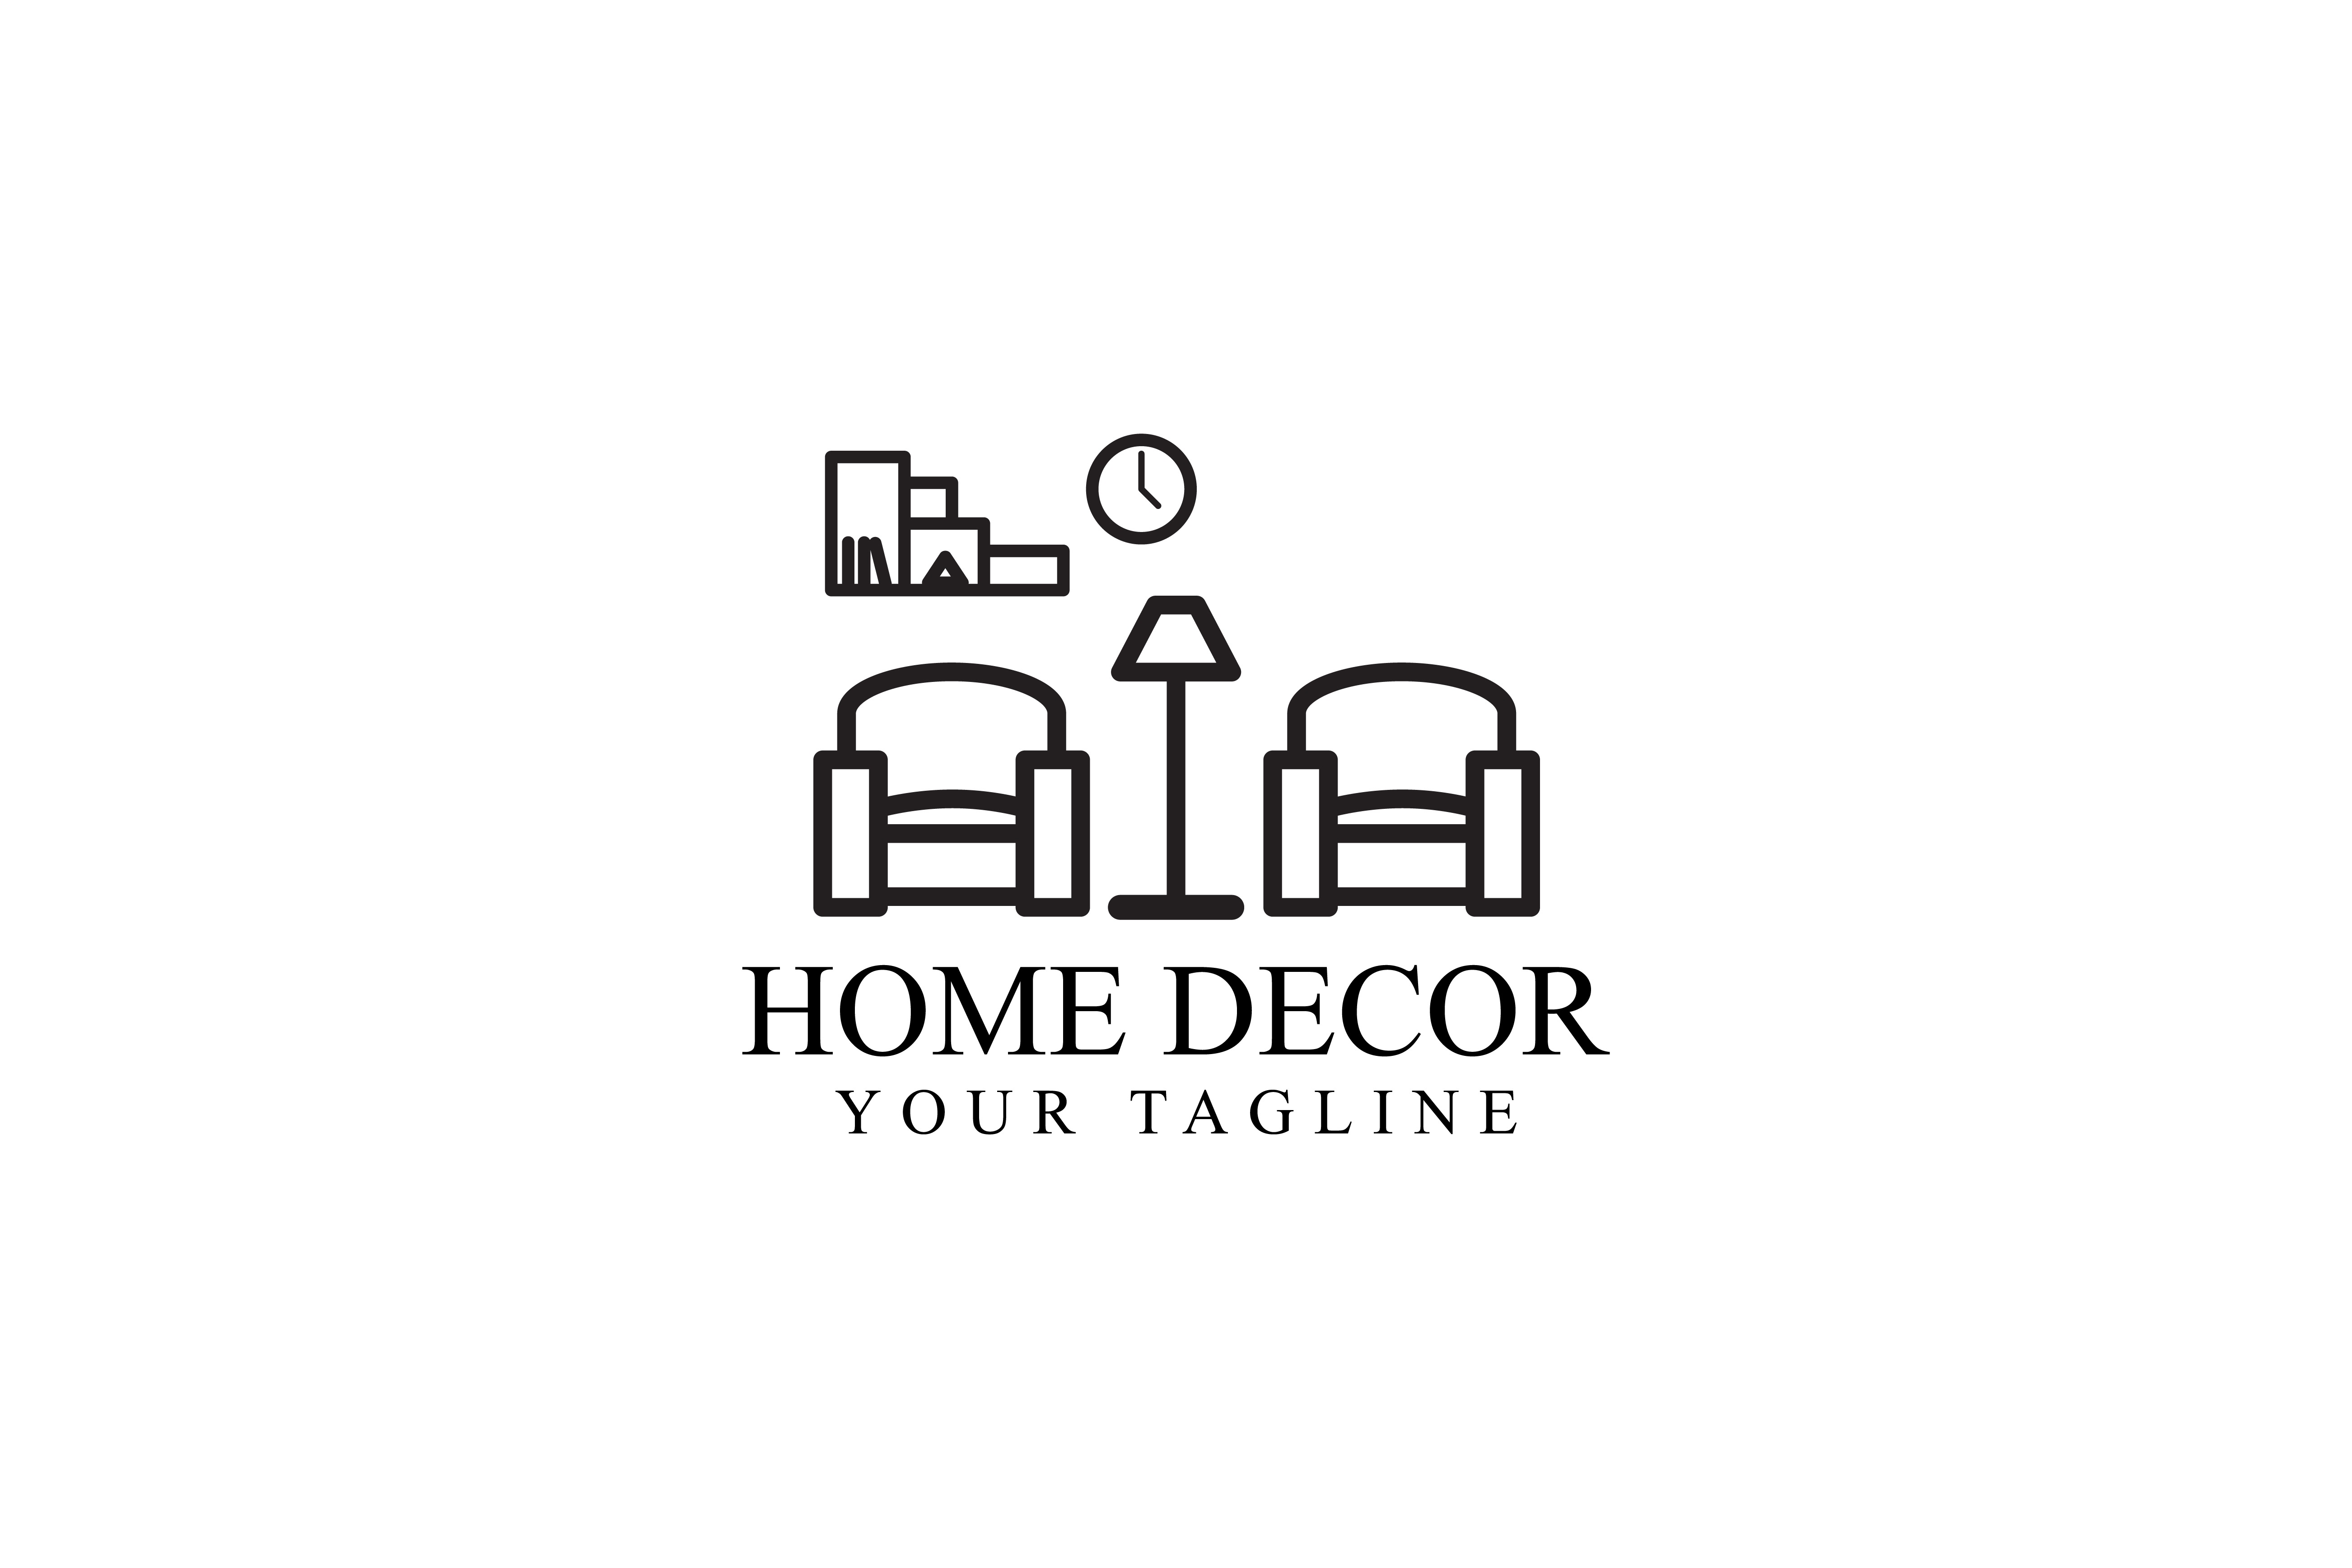 Download Free Home Decoration Design Graphic By Sabavector Creative Fabrica for Cricut Explore, Silhouette and other cutting machines.